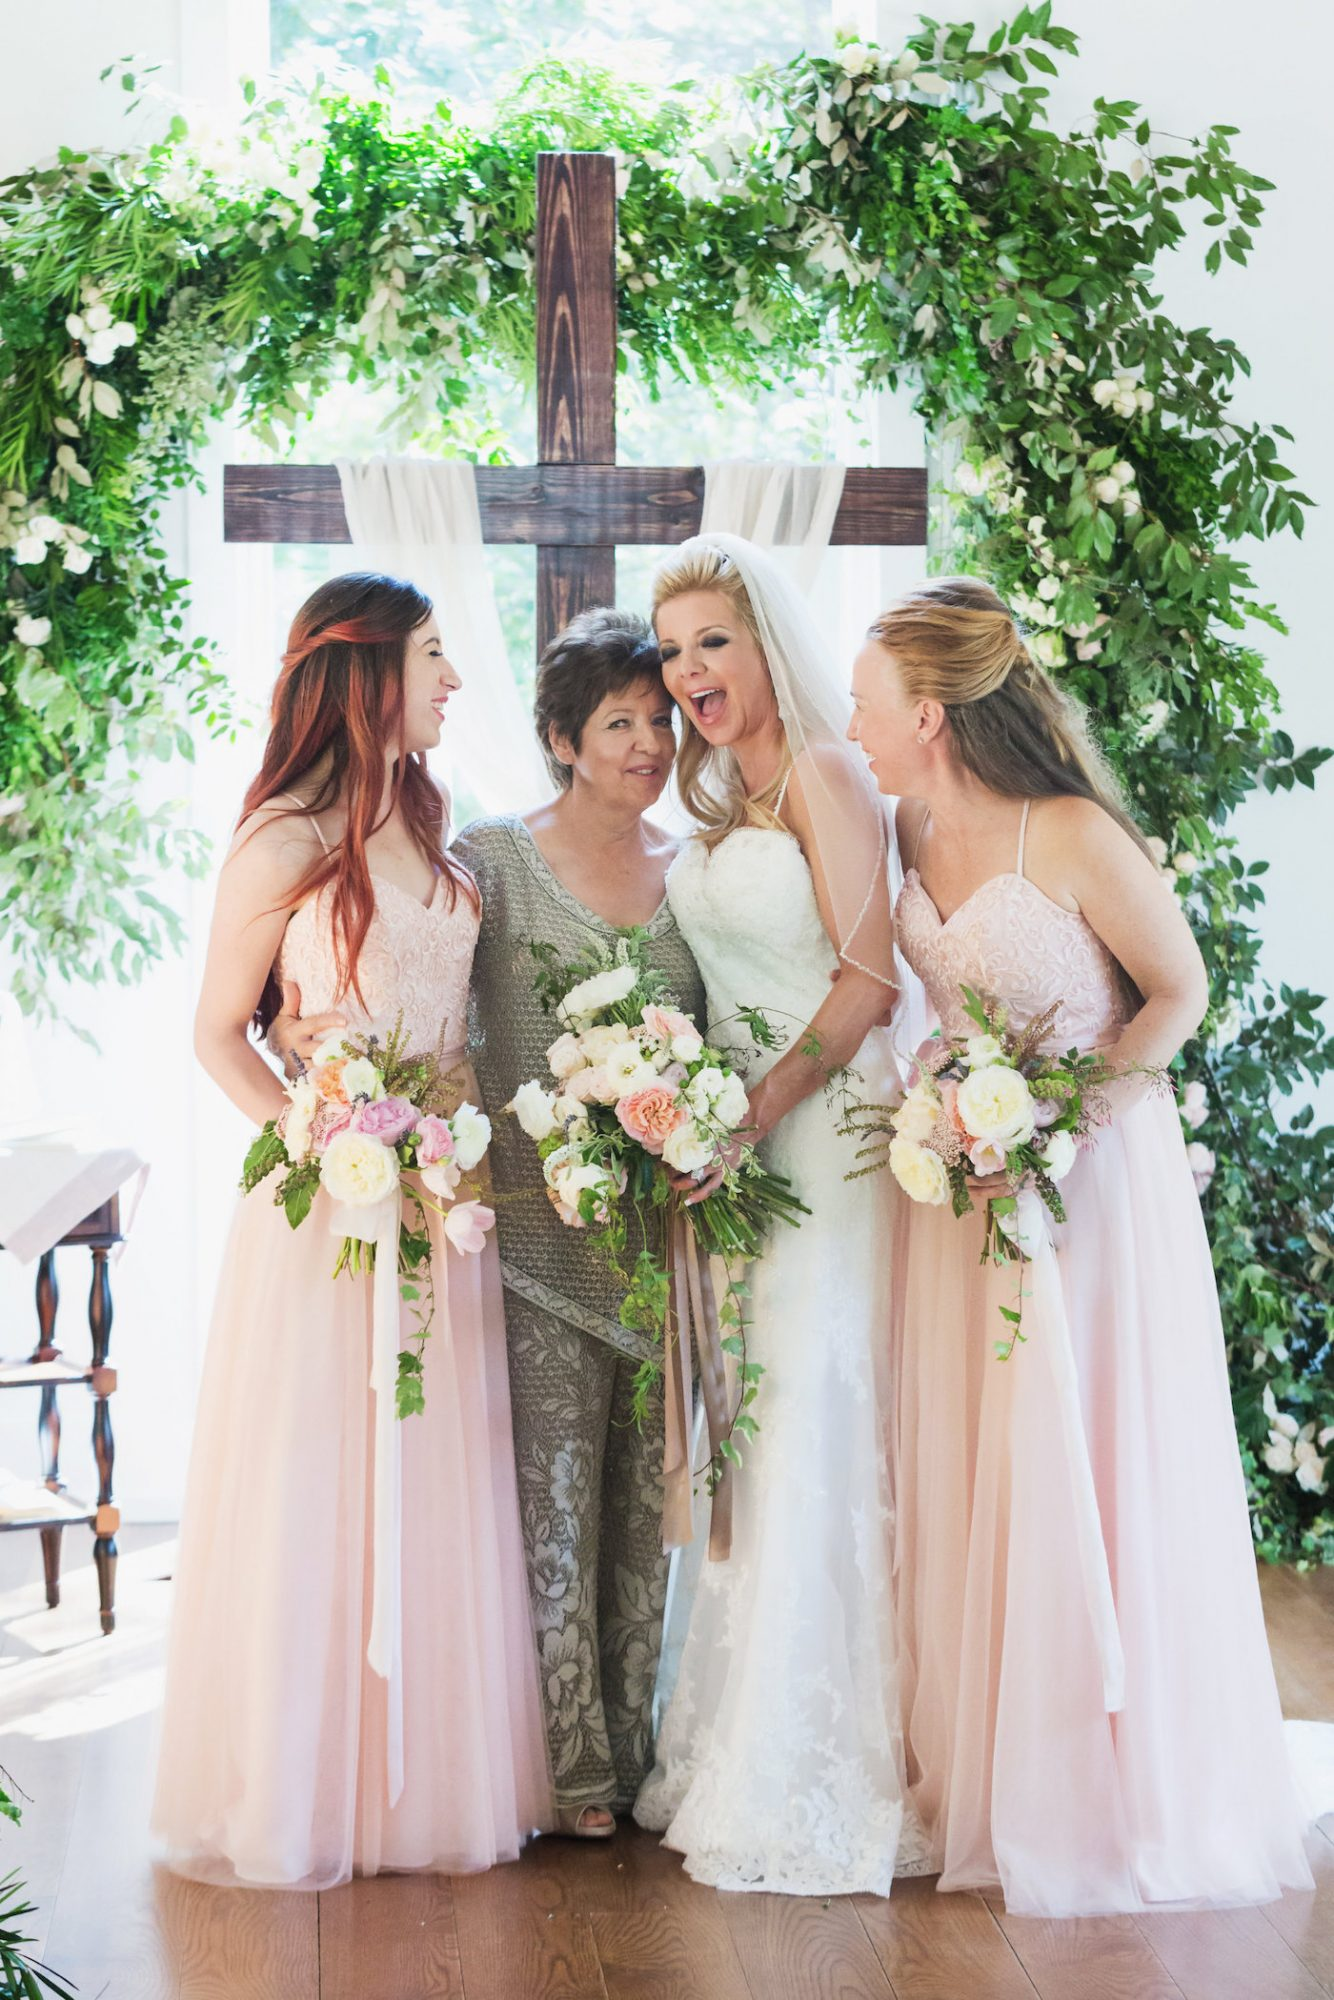 Bridesmaids and Mother of Bride Laughing